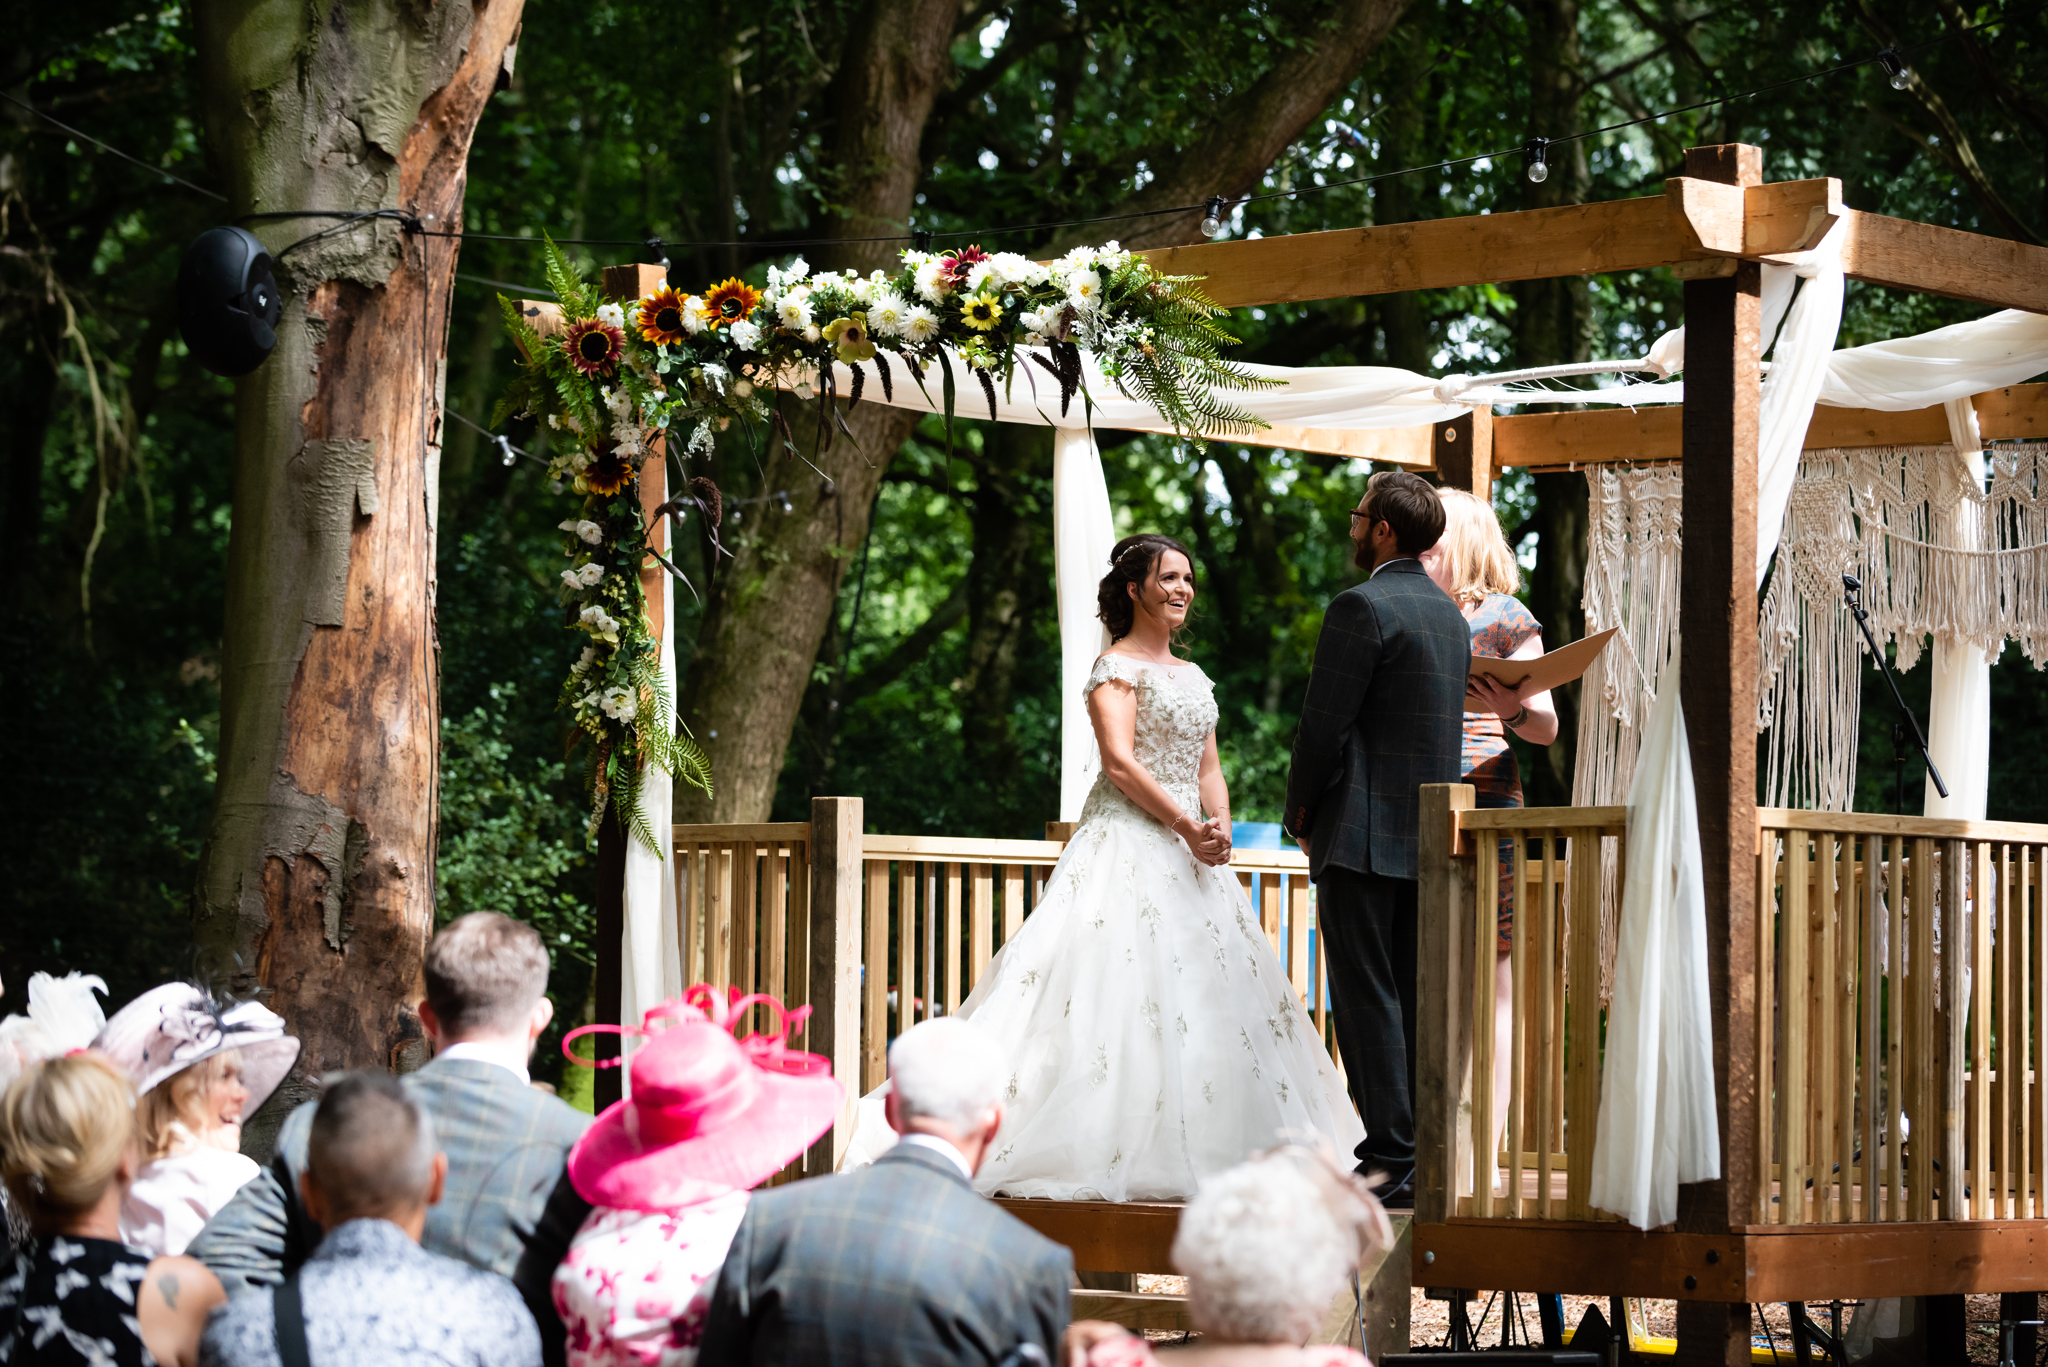 Outdoor wedding ceremony at Lila's wood in Tring